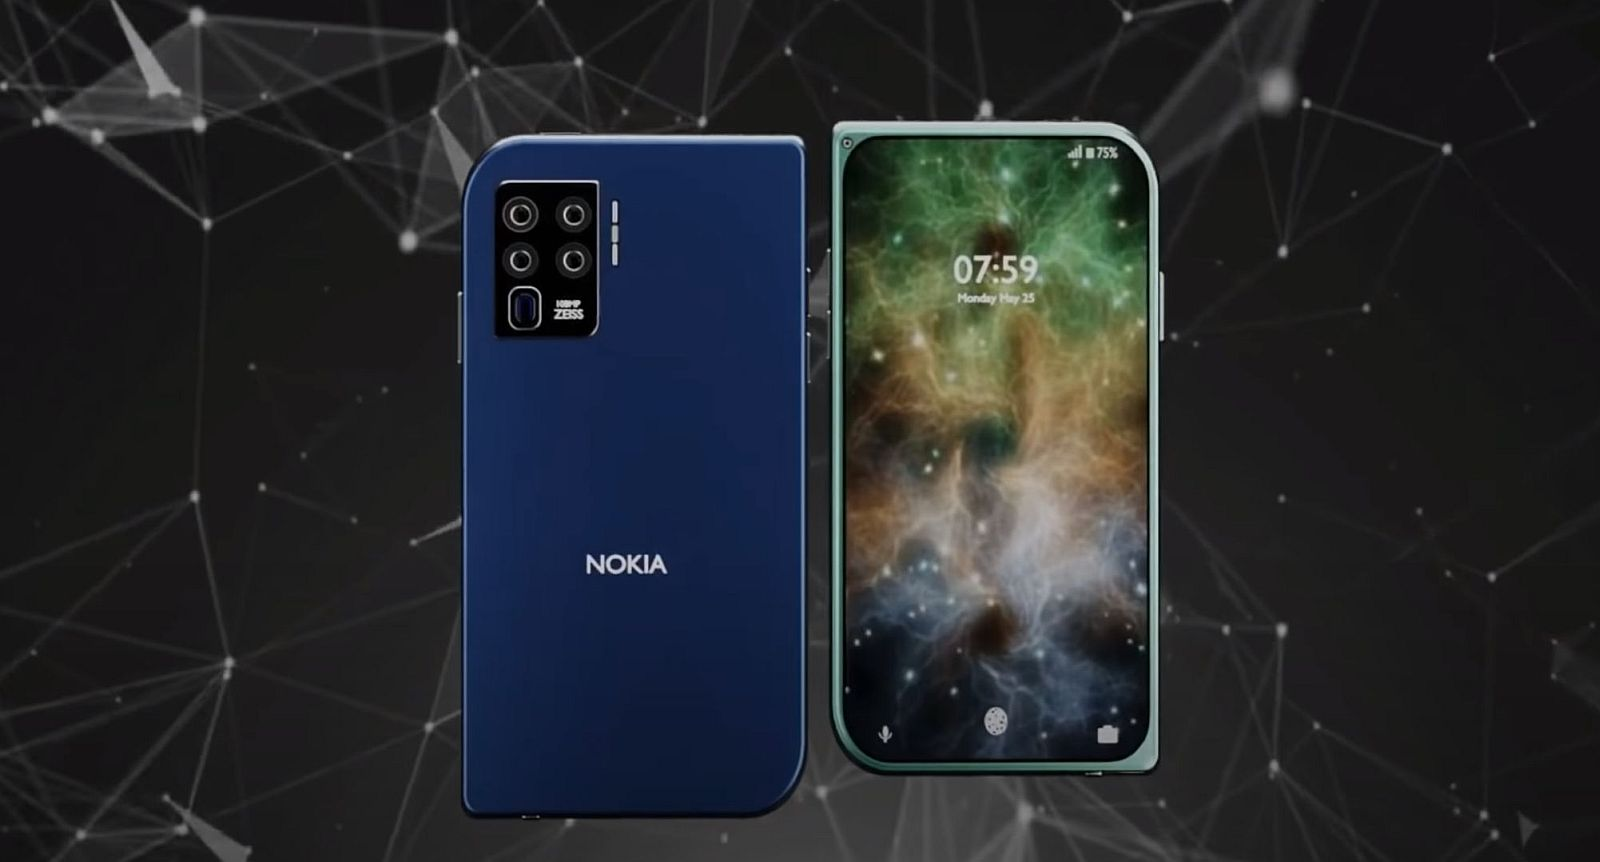 Nokia 7610 5g Gets The 2020 Treatment With 5 Crazy Cameras Concept Phones